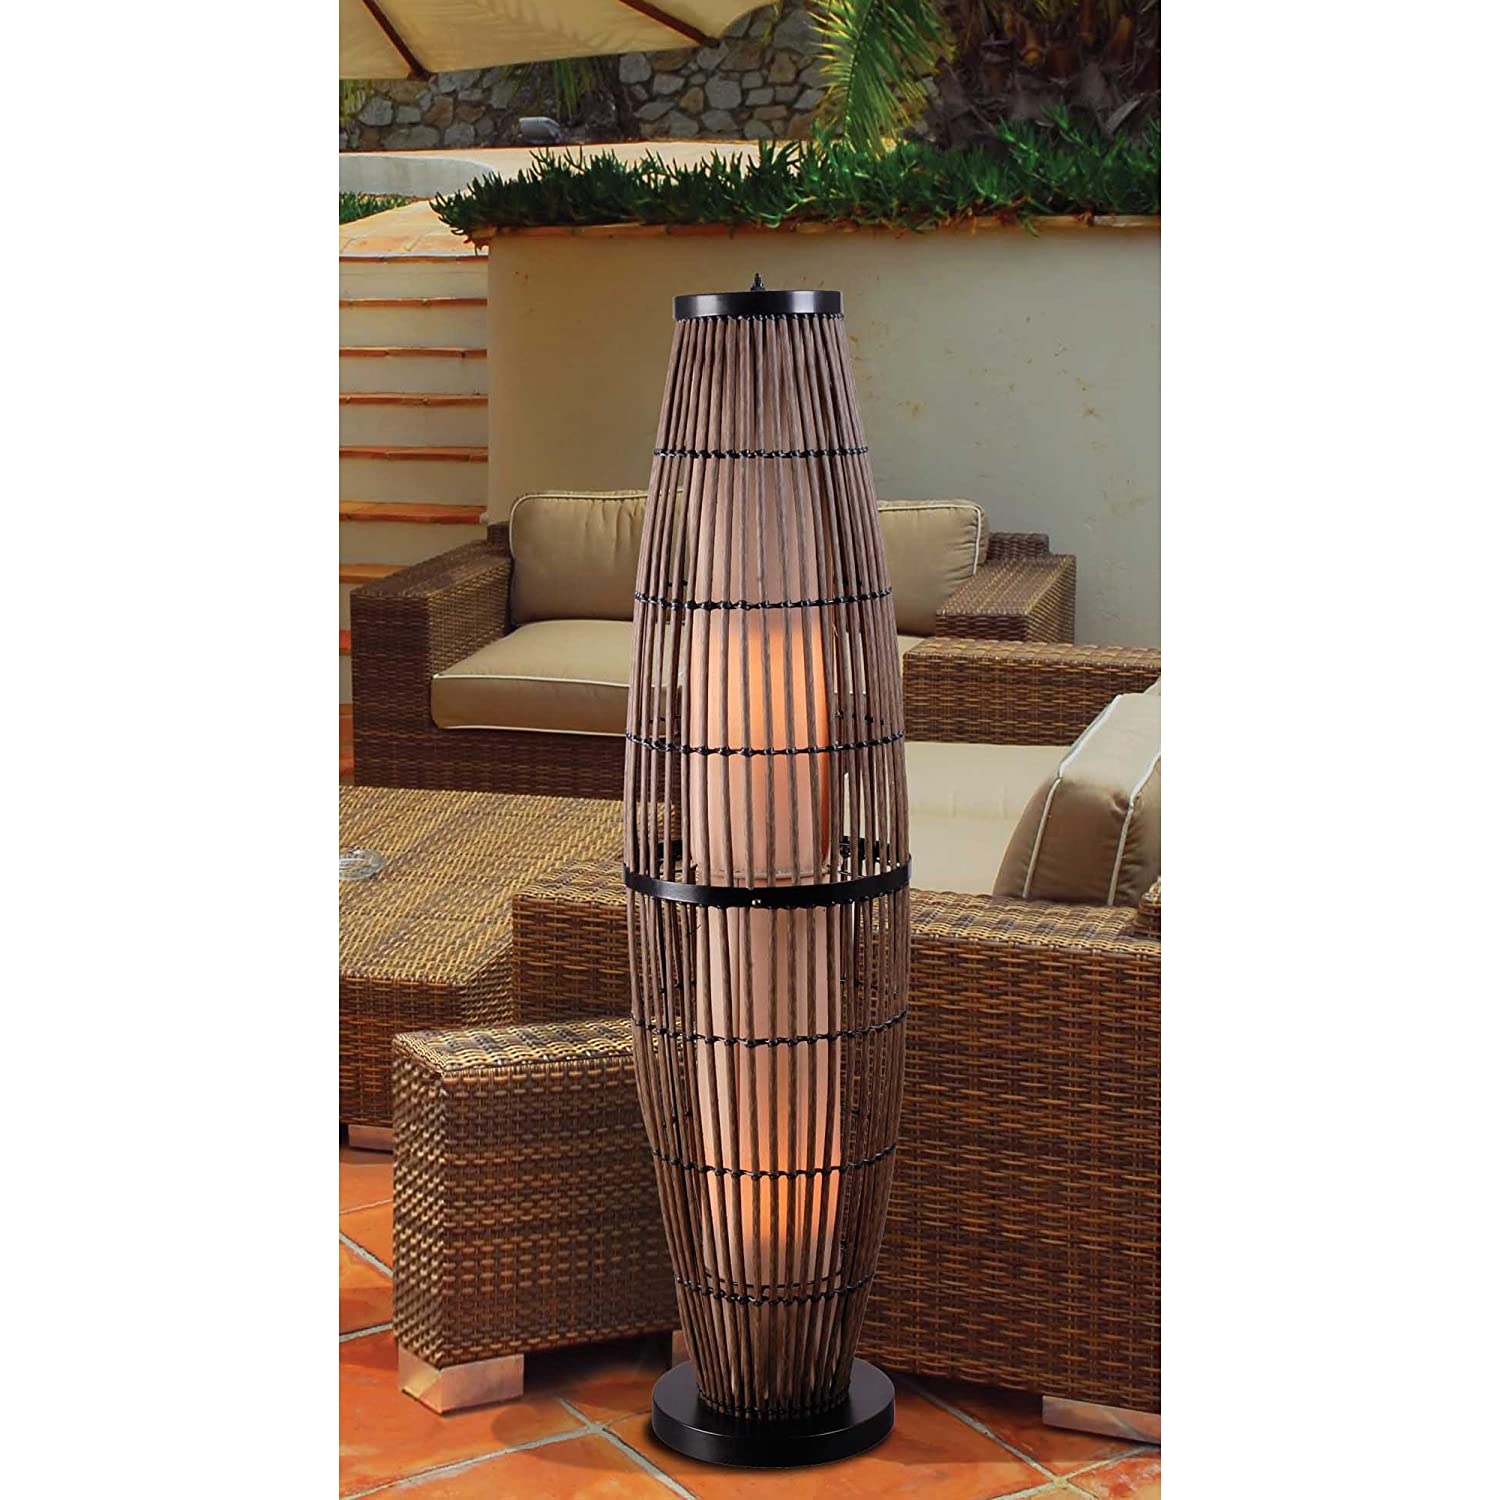 Delightful Kenroy Home 32248RAT Biscayne Outdoor Floor Lamp, Rattan Finish With Bronze  Accents     Amazon.com